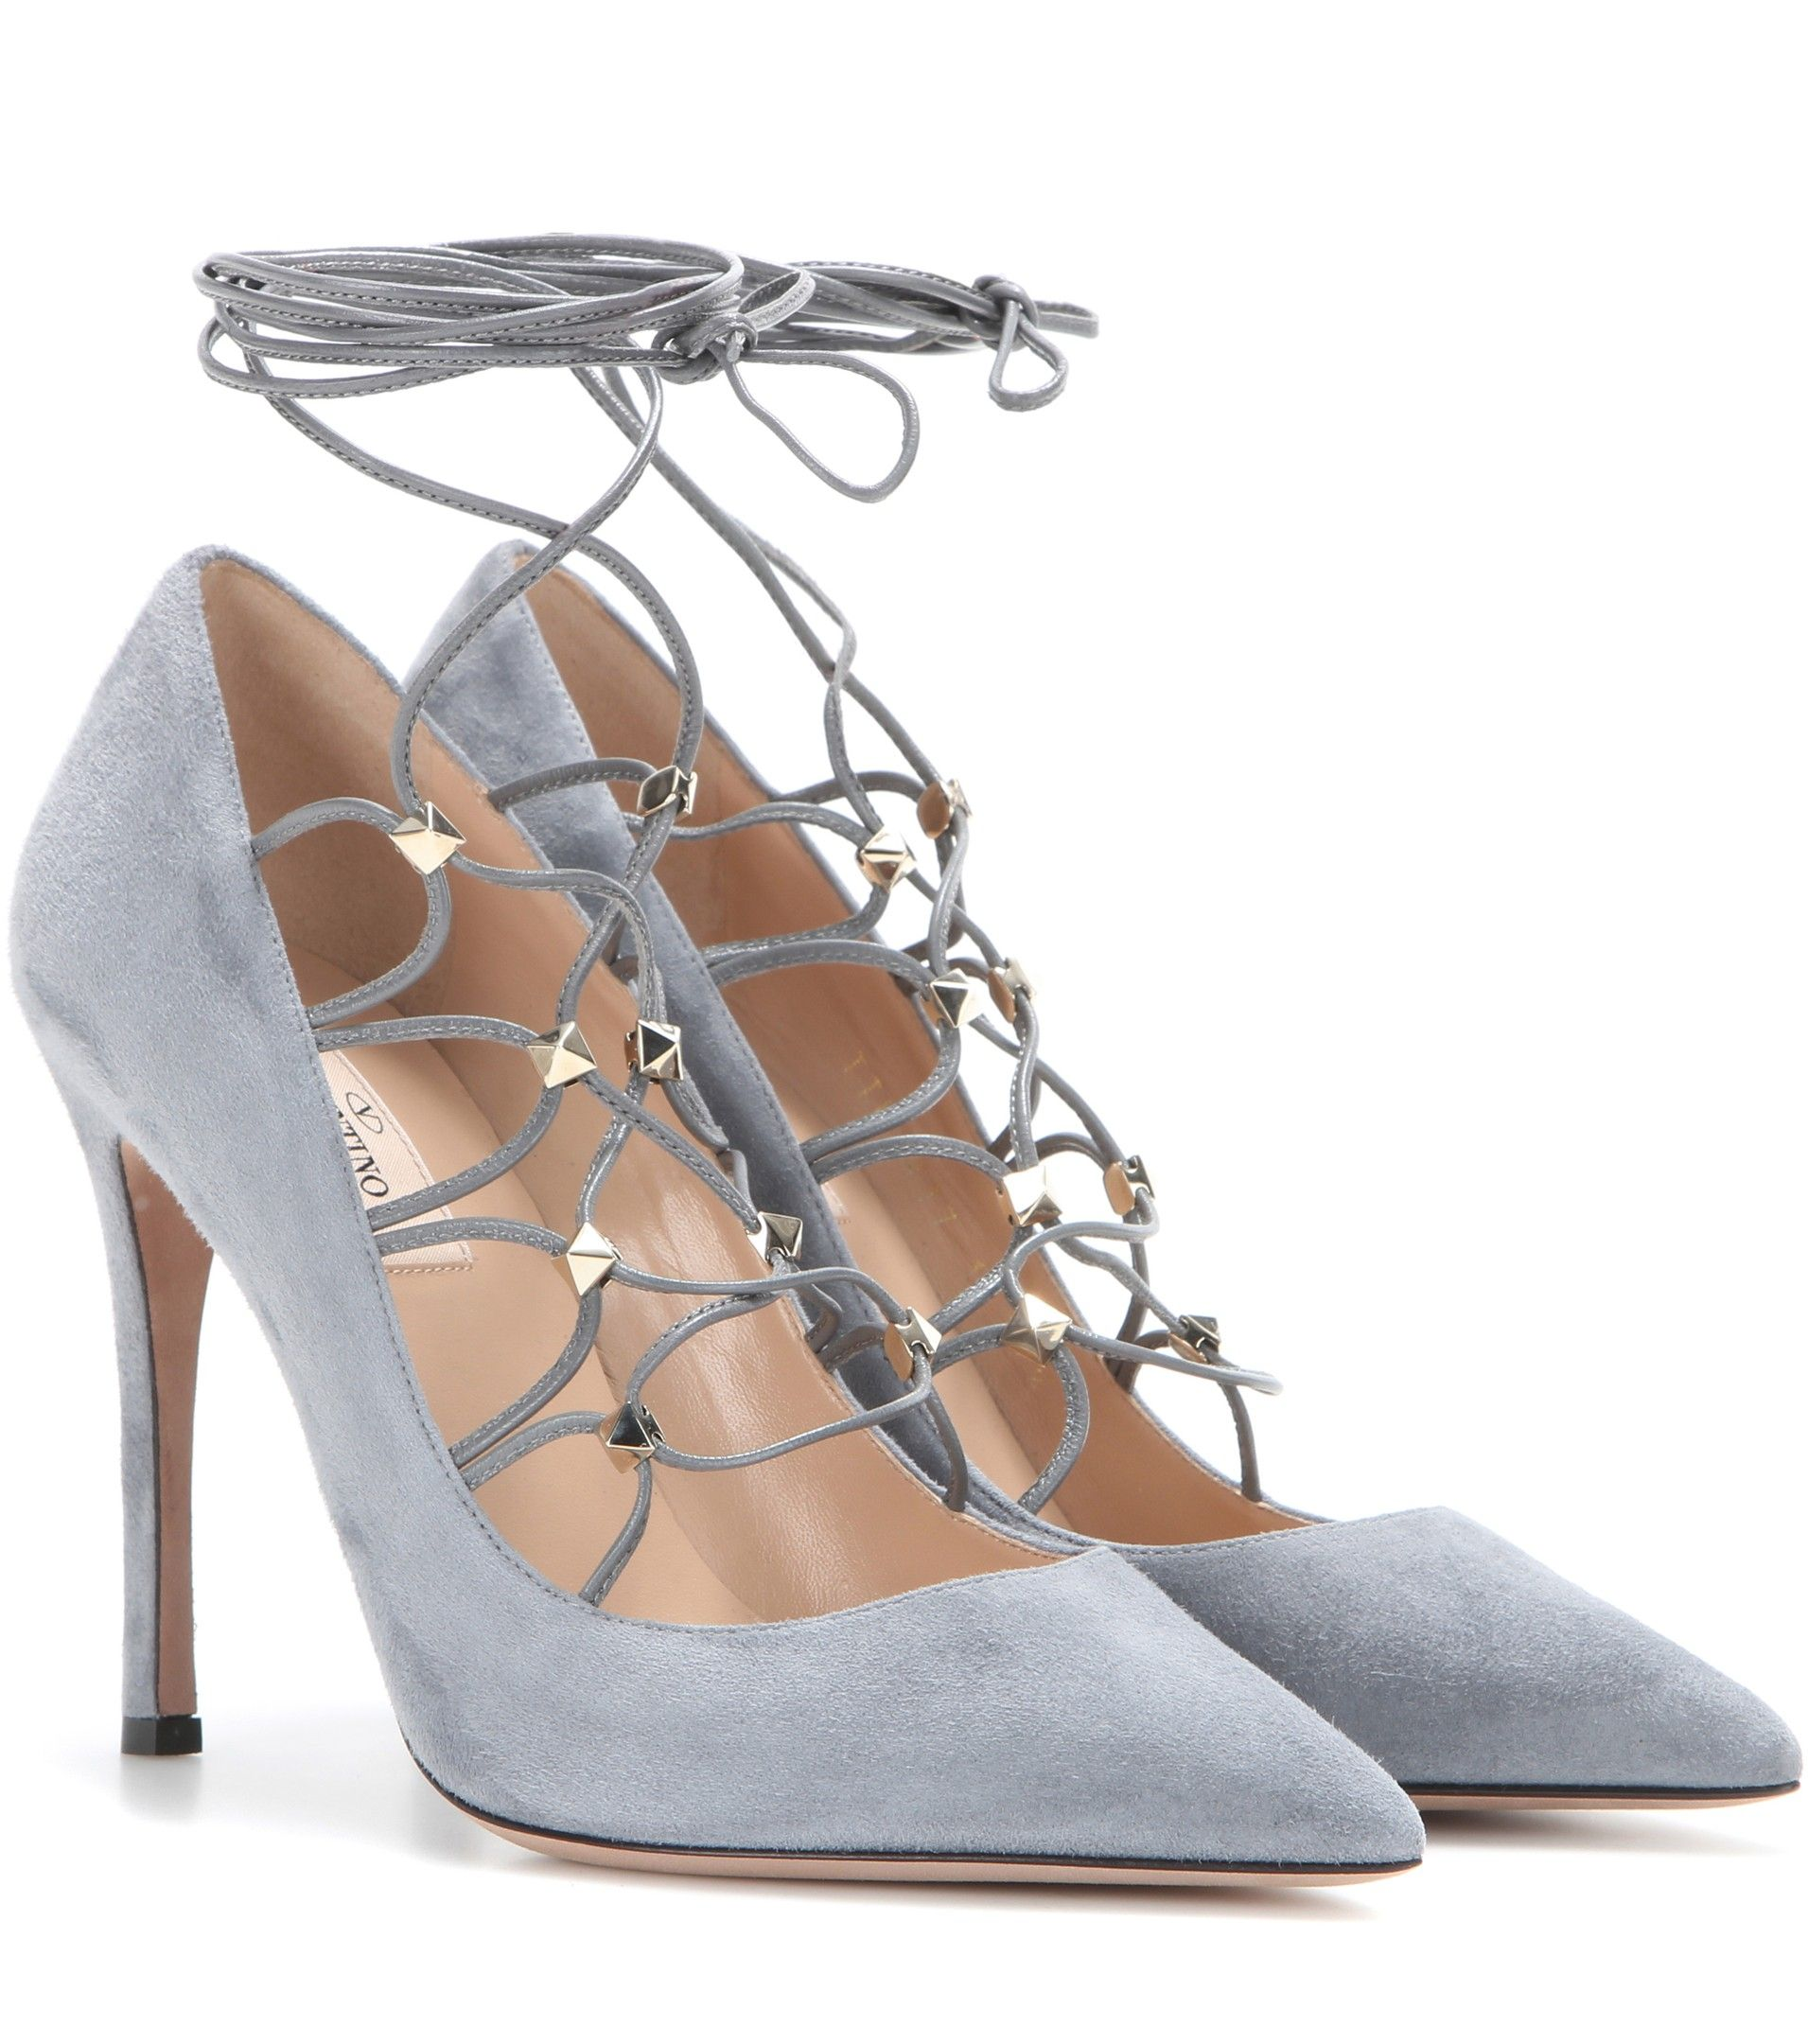 0a79a09910533 Valentino Rockstud suede lace-up pumps Light Blue $139.00 | Wardrobe ...